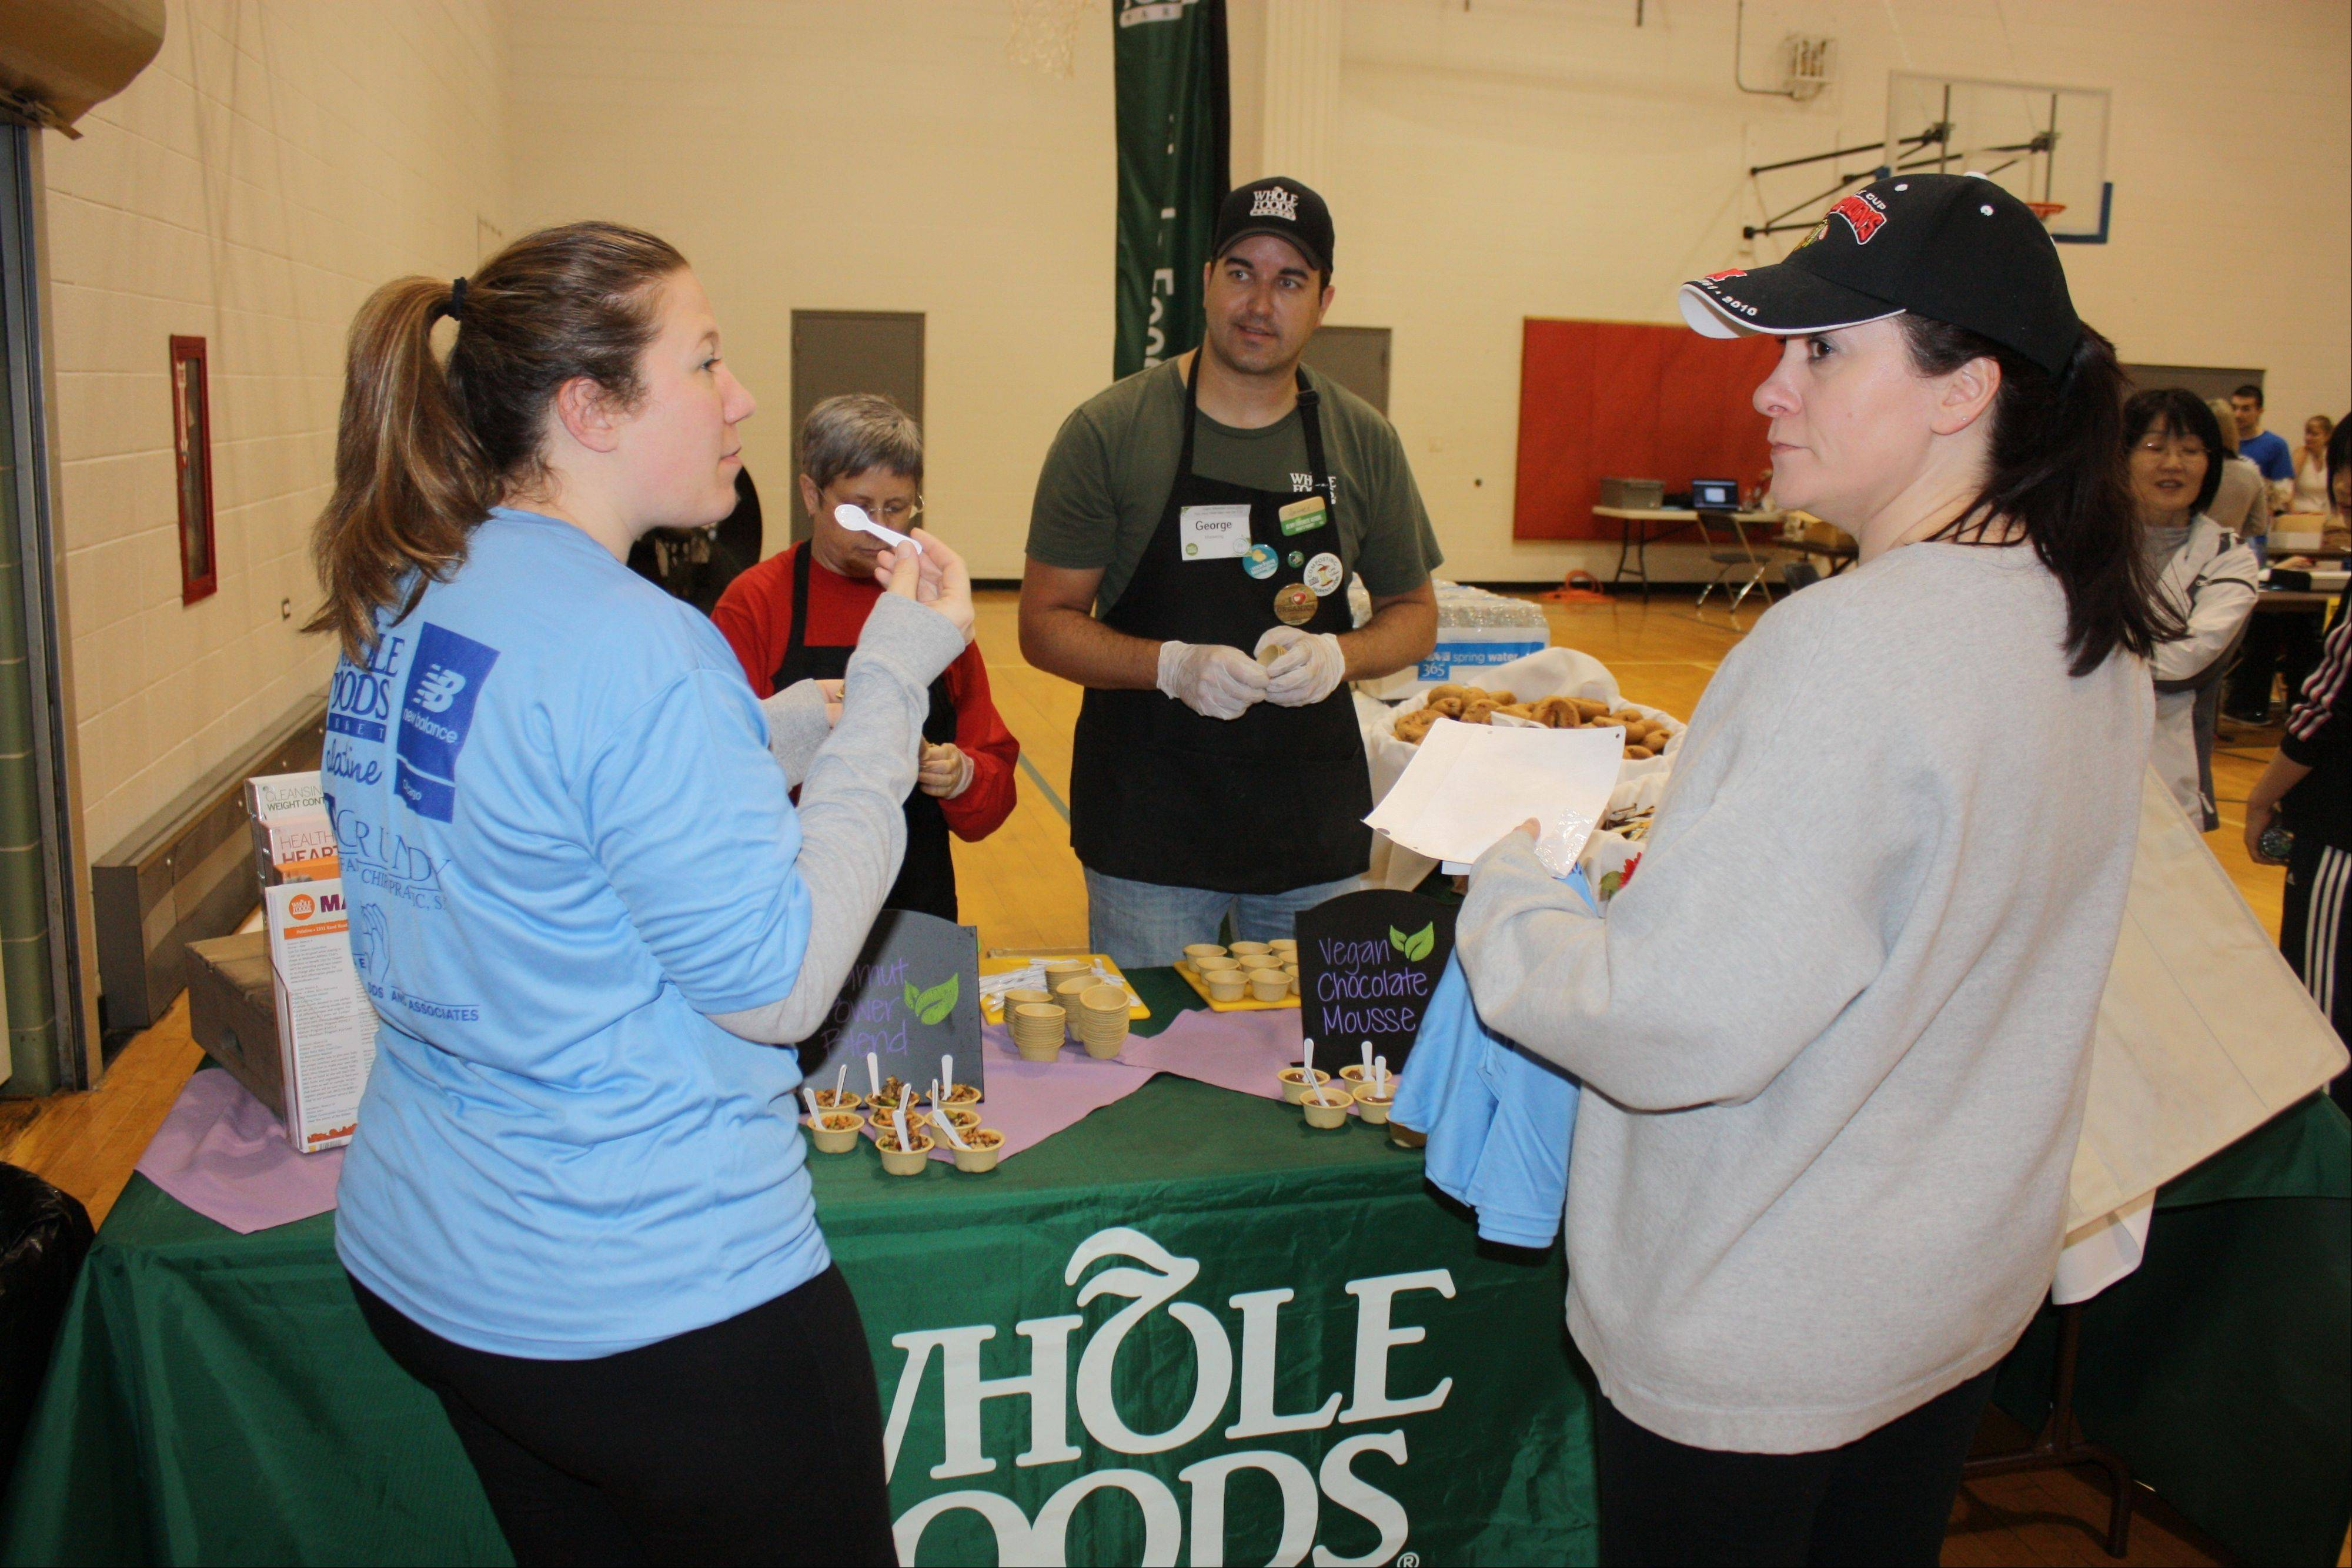 Participants of last year's Healthy Living Expo sample healthy snacks from Whole Foods in Palatine. The Palatine Park District will host its second annual Healthy Living Expo from 8-11 a.m. on Saturday, April 6, at Birchwood Recreation Center, 435 W. Illinois Ave., in Palatine.